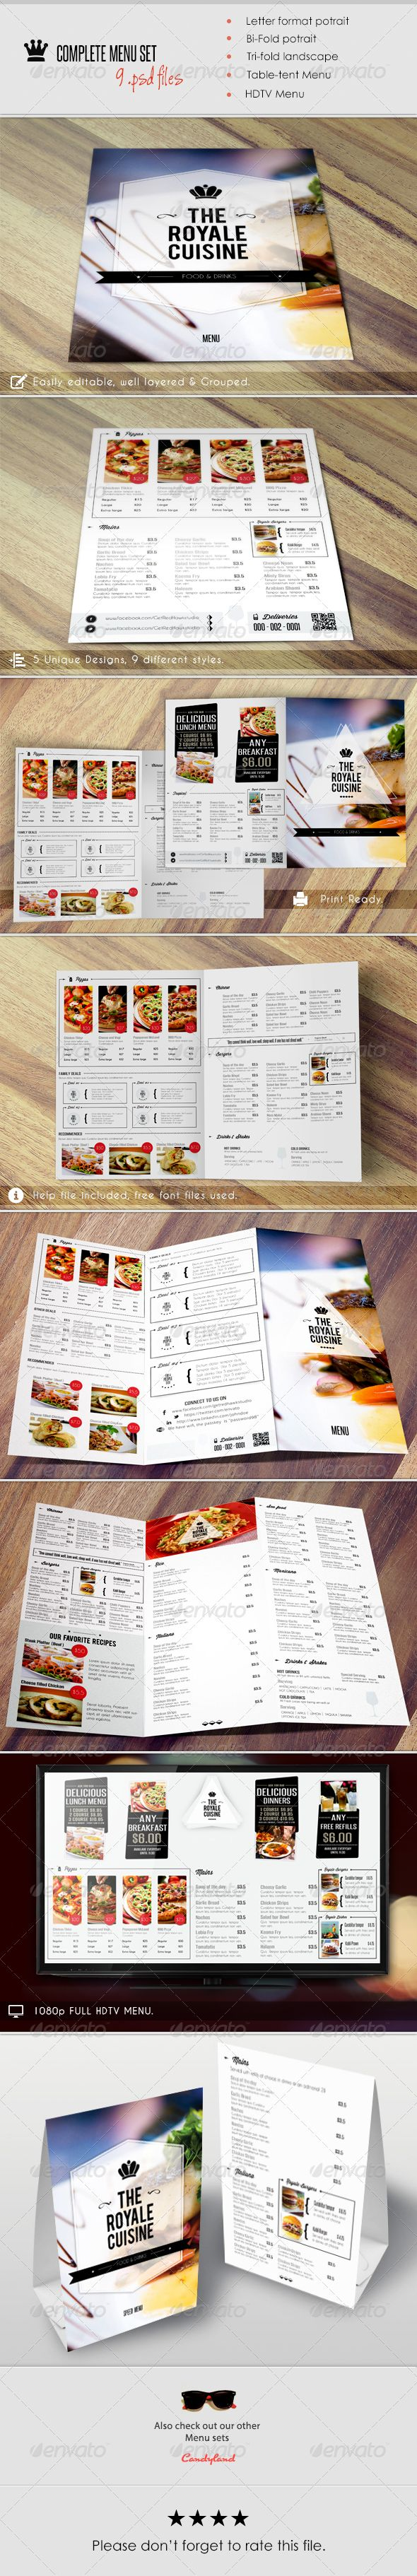 Best Design Menu Images On   Print Templates Food